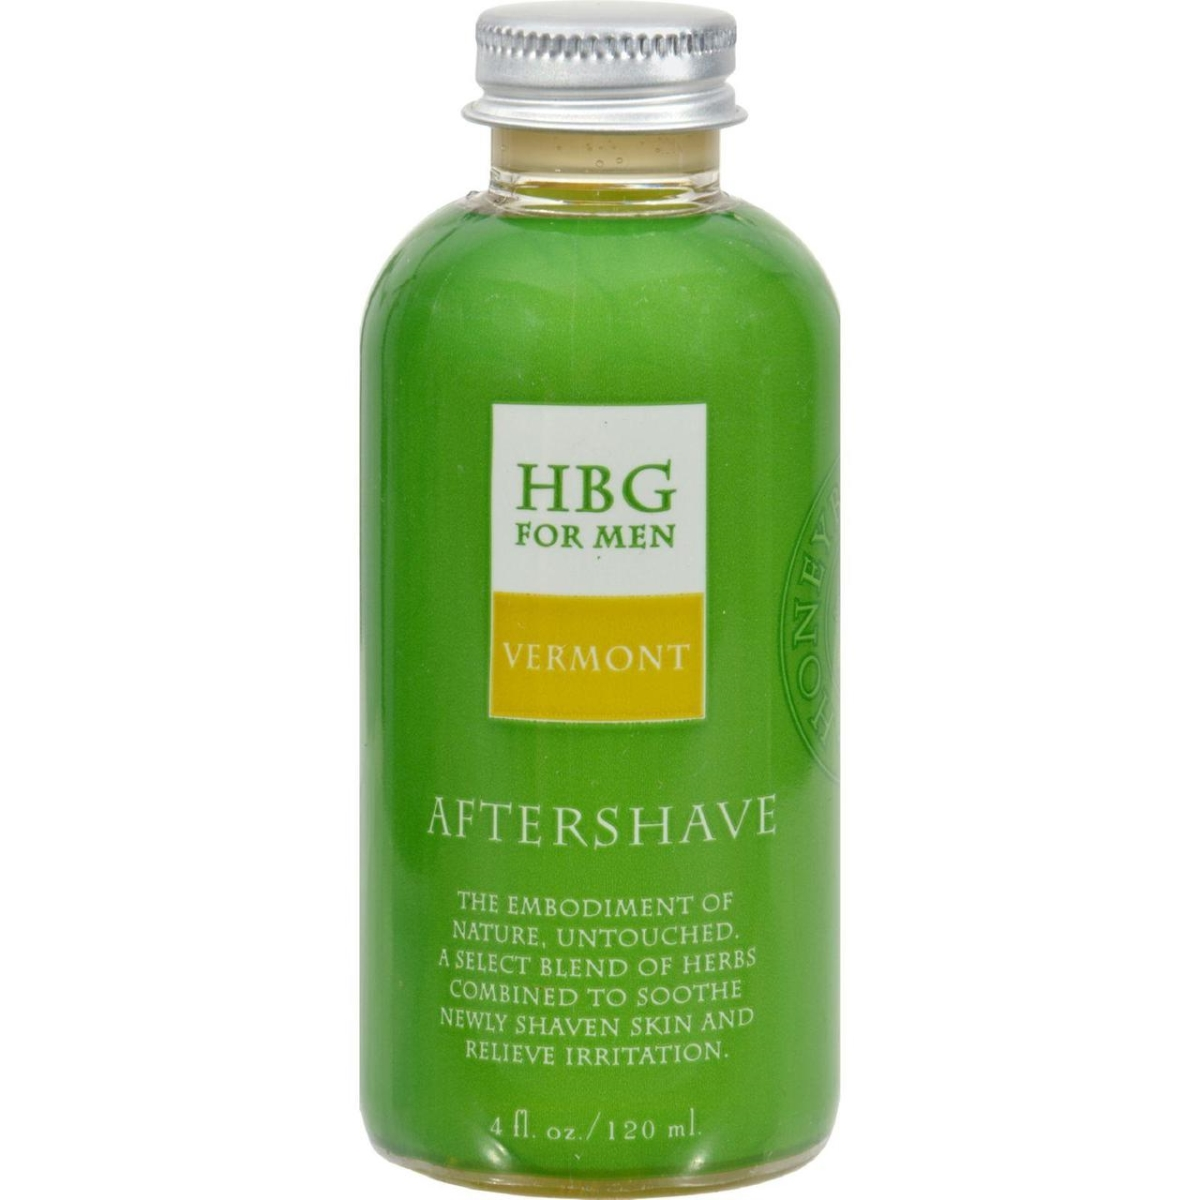 Honeybee Gardens HG0418376 4 fl oz Aftershave - Herbal Vermont